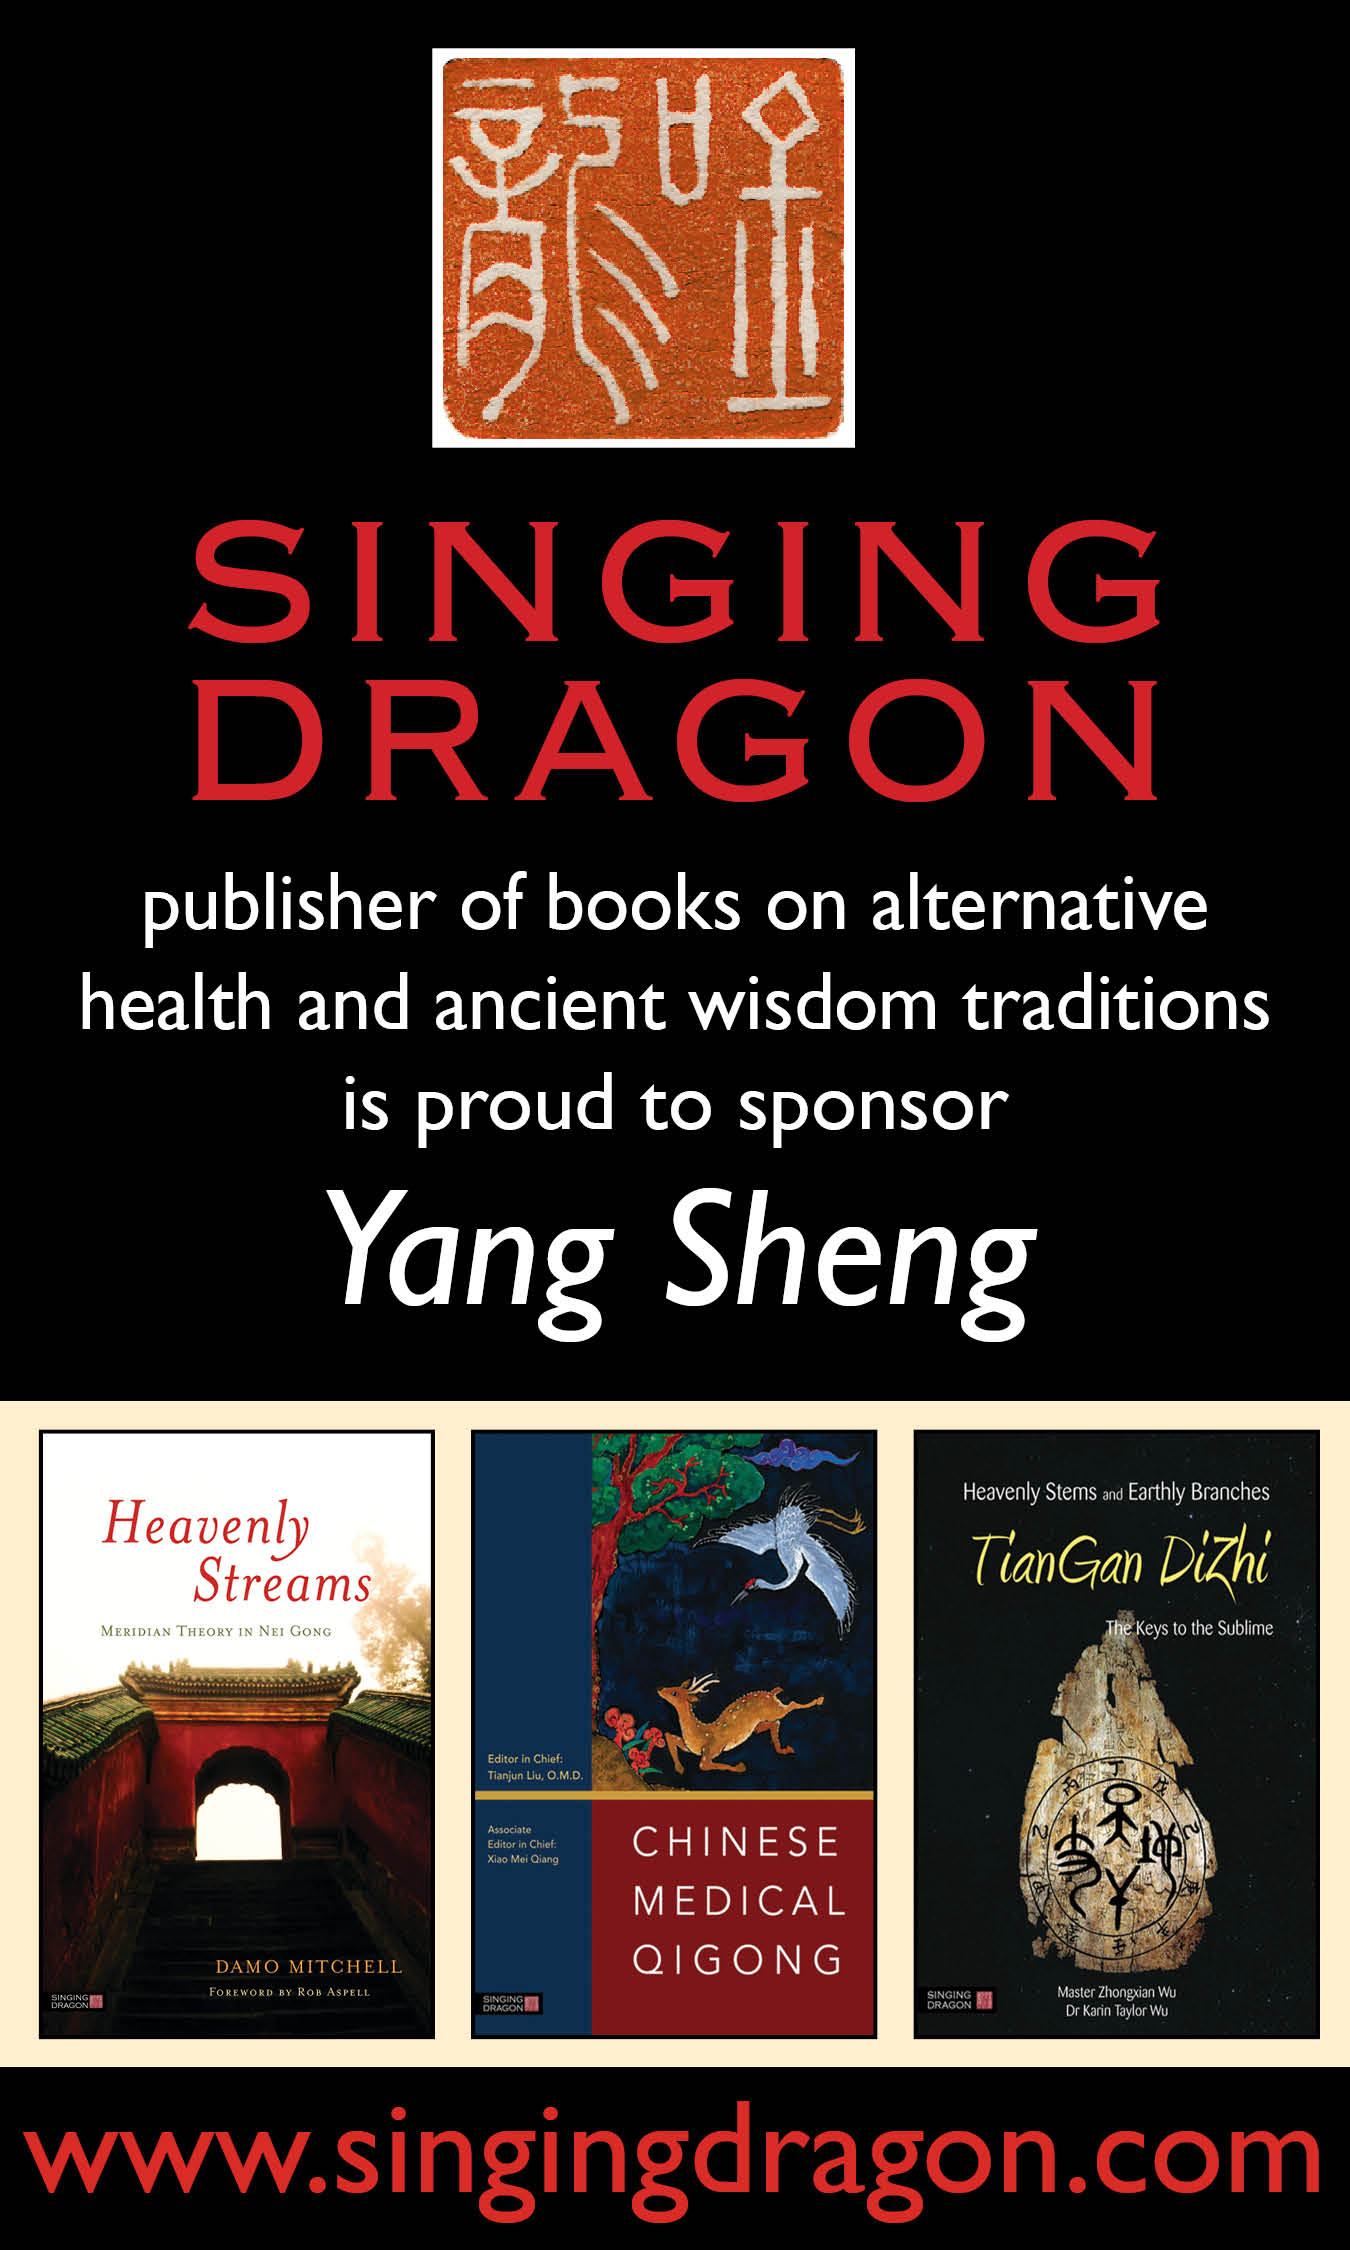 Singing Dragon Bookstore